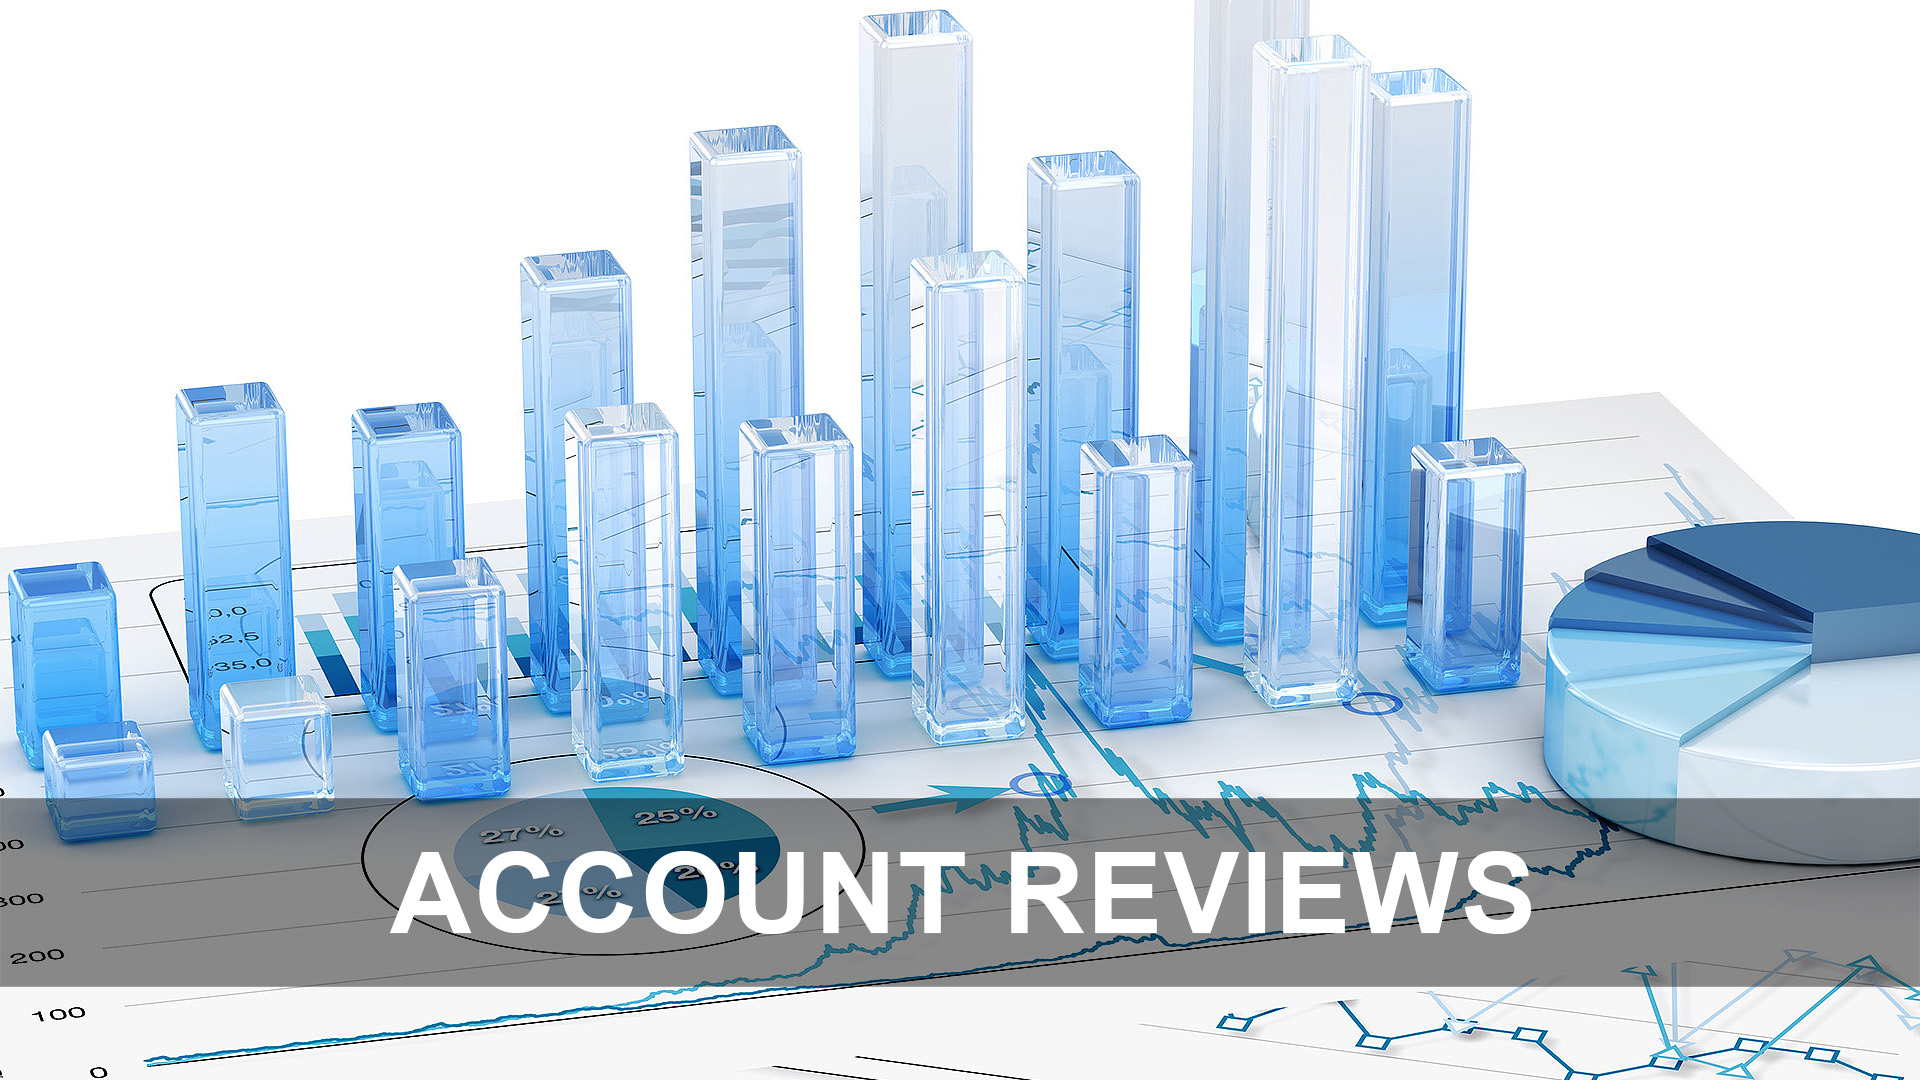 Account Reviews - KAM.jpg